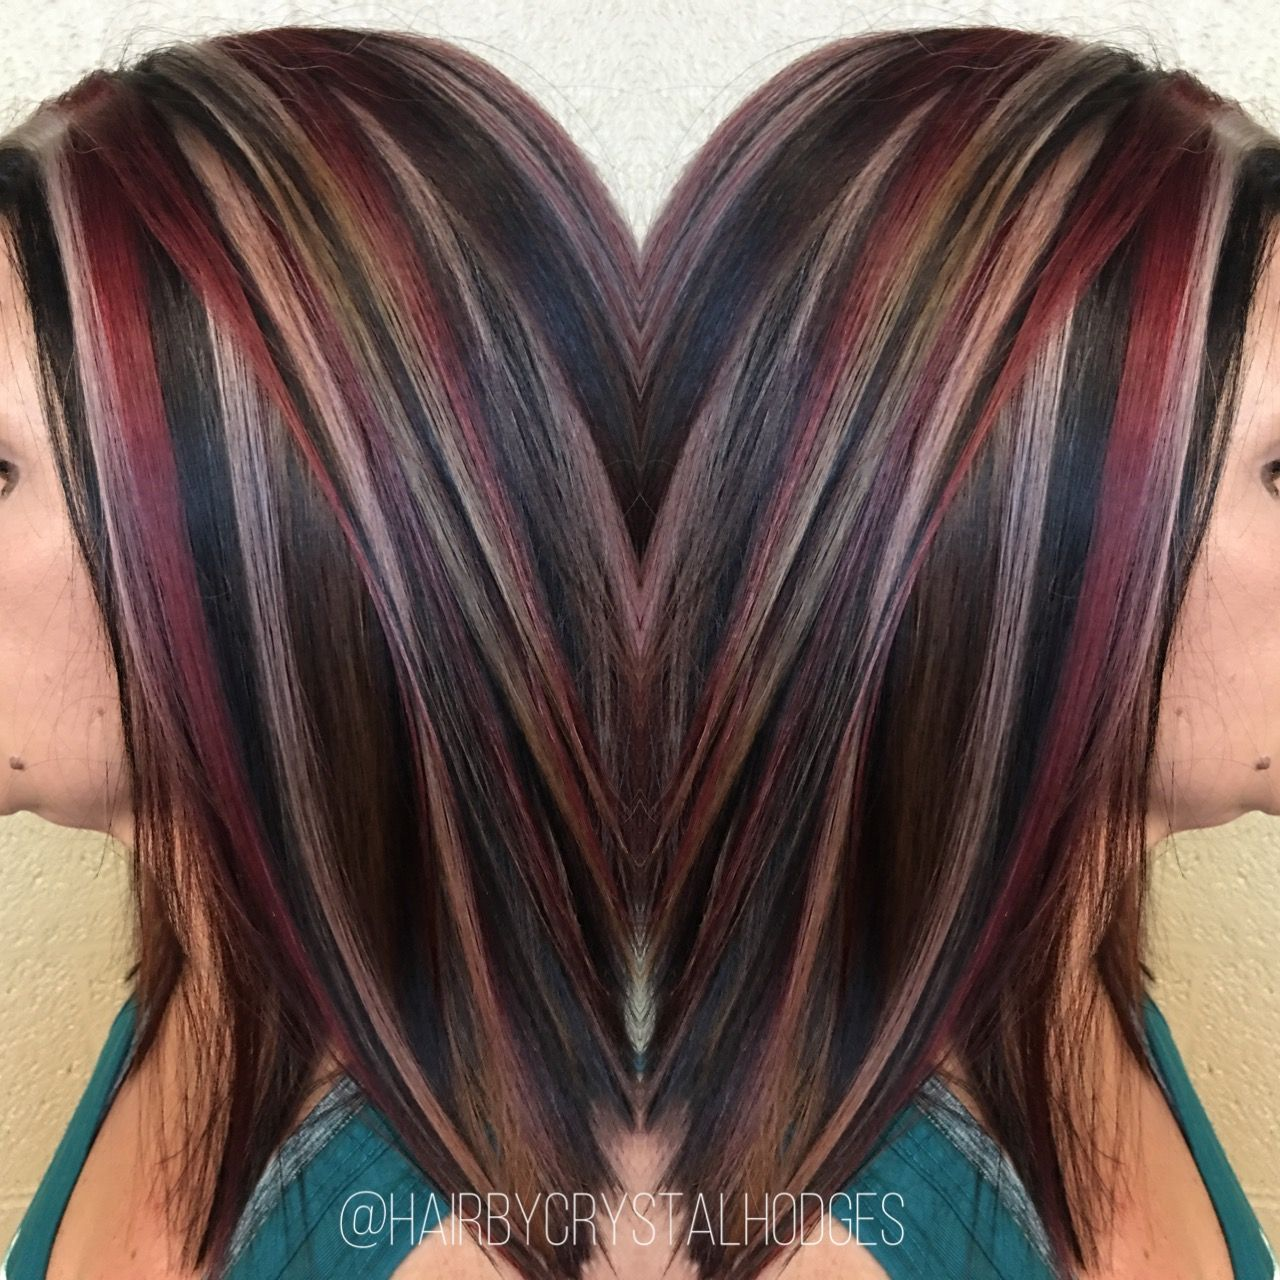 Chunky highlight red blonde brown http://niffler-elm ...